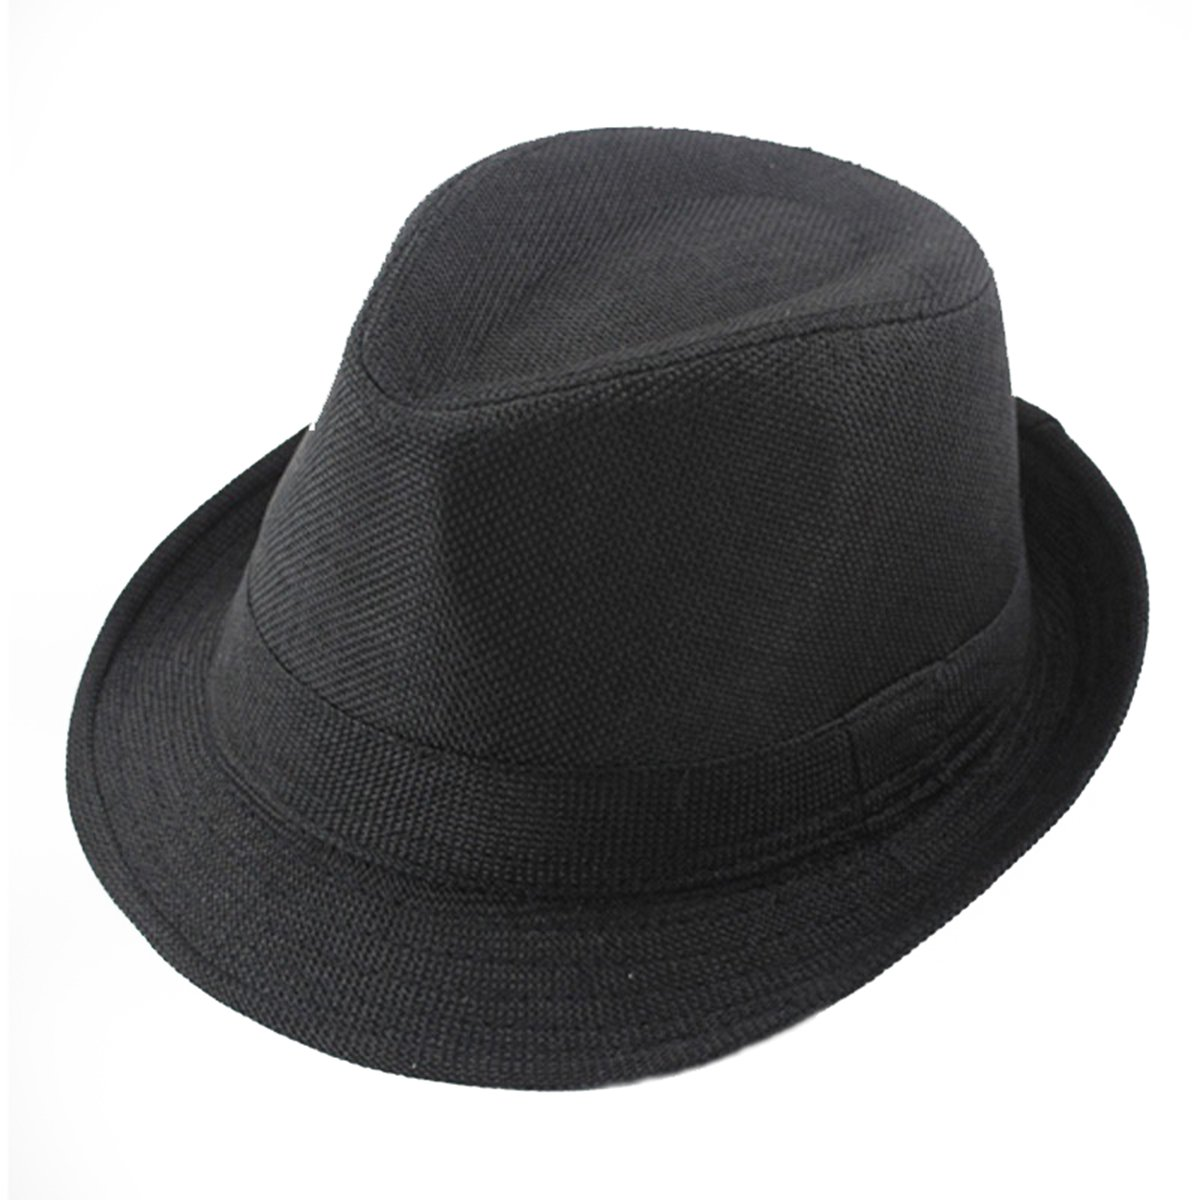 1d19e1f12fa Stylish children s linen fedora with accent band. Trilby-style fedora hat  for your little gangster. Classic-style fedora fitted for a youngster s  head.